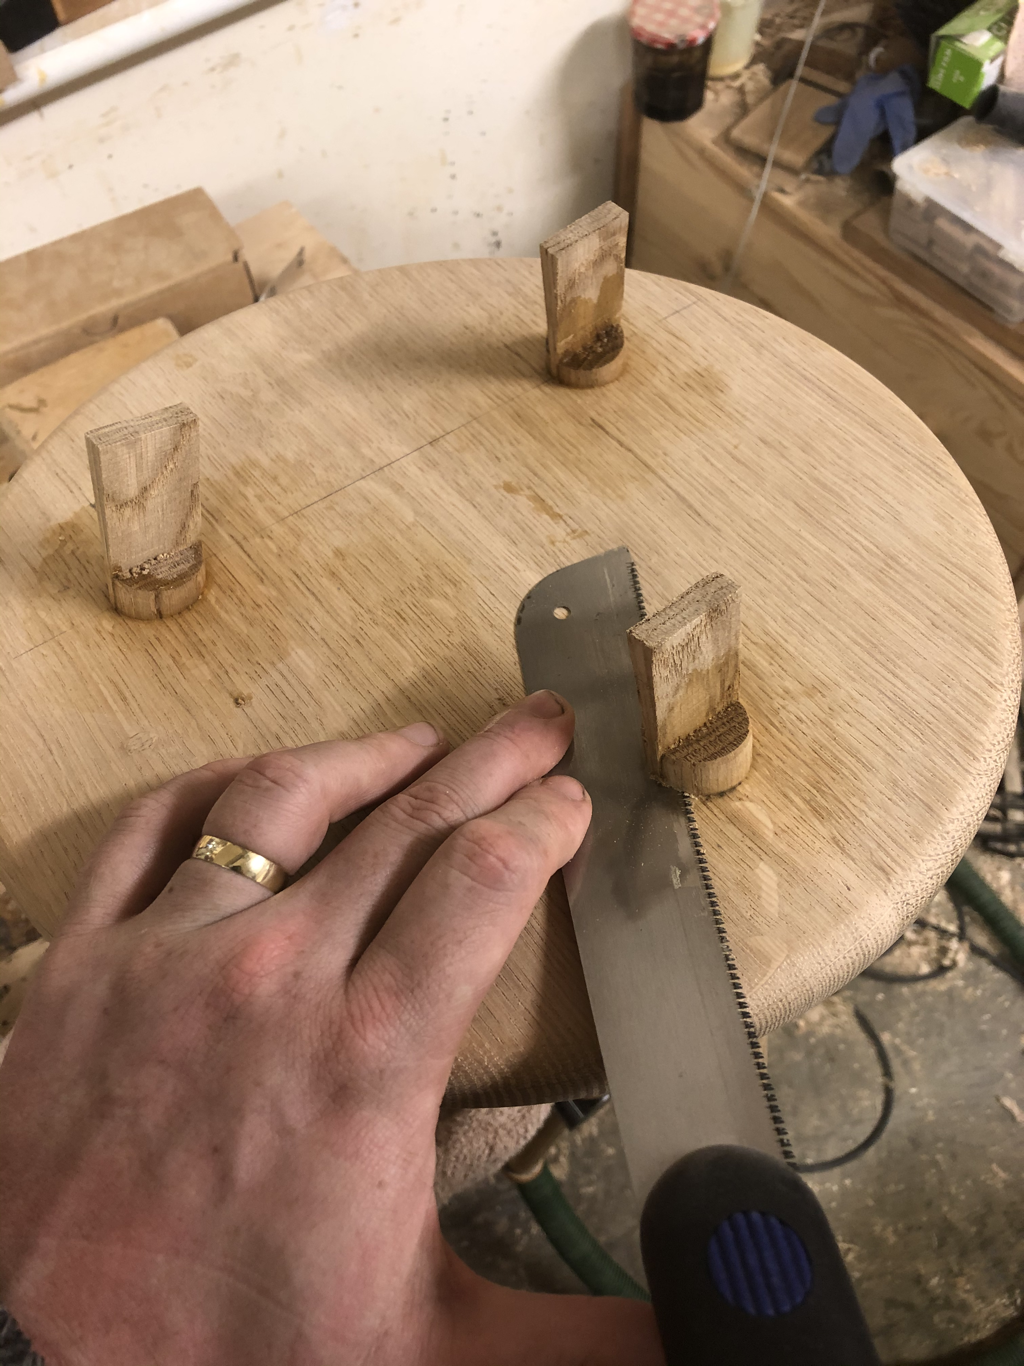 Flush cut saw being used to trim off wedges on a Stable Stool